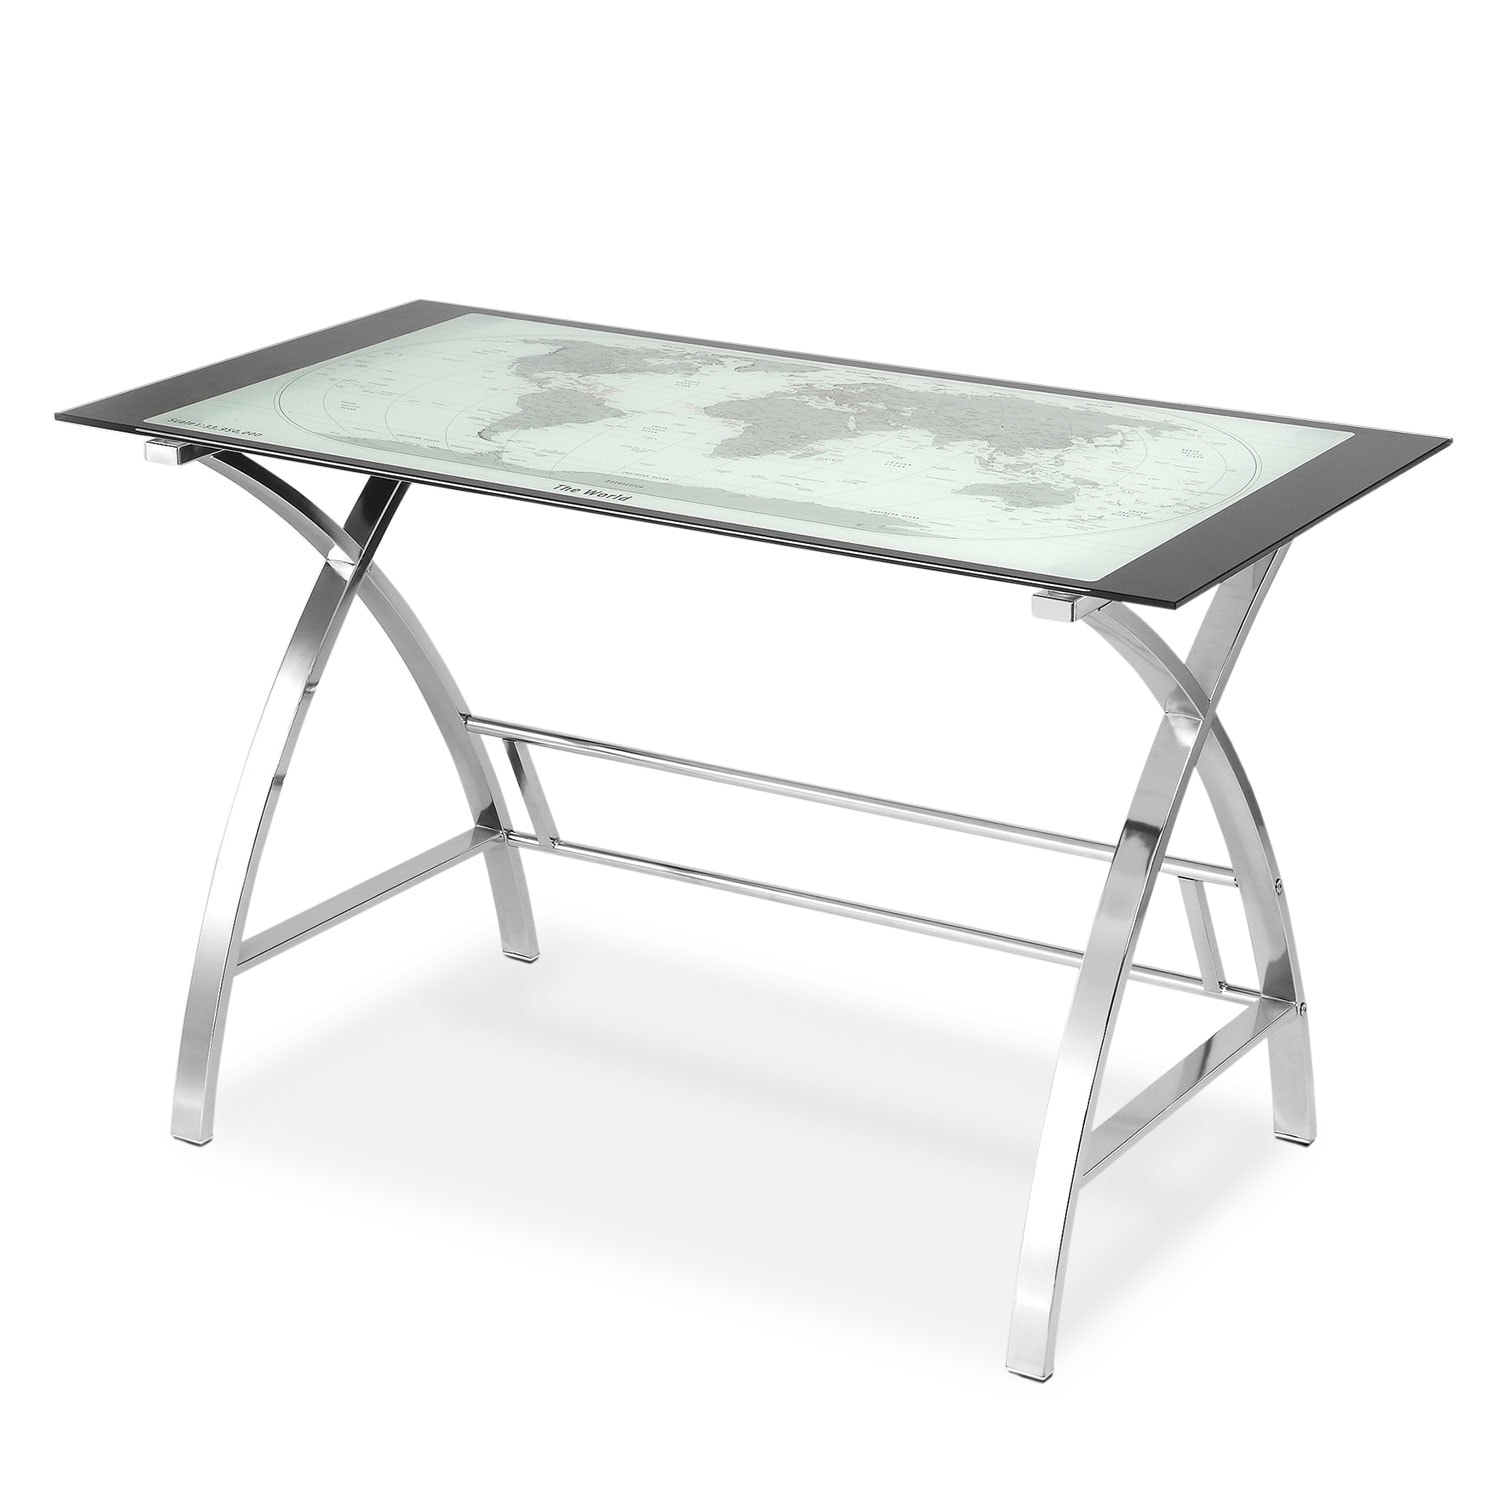 Home Office Furniture - Aether Desk